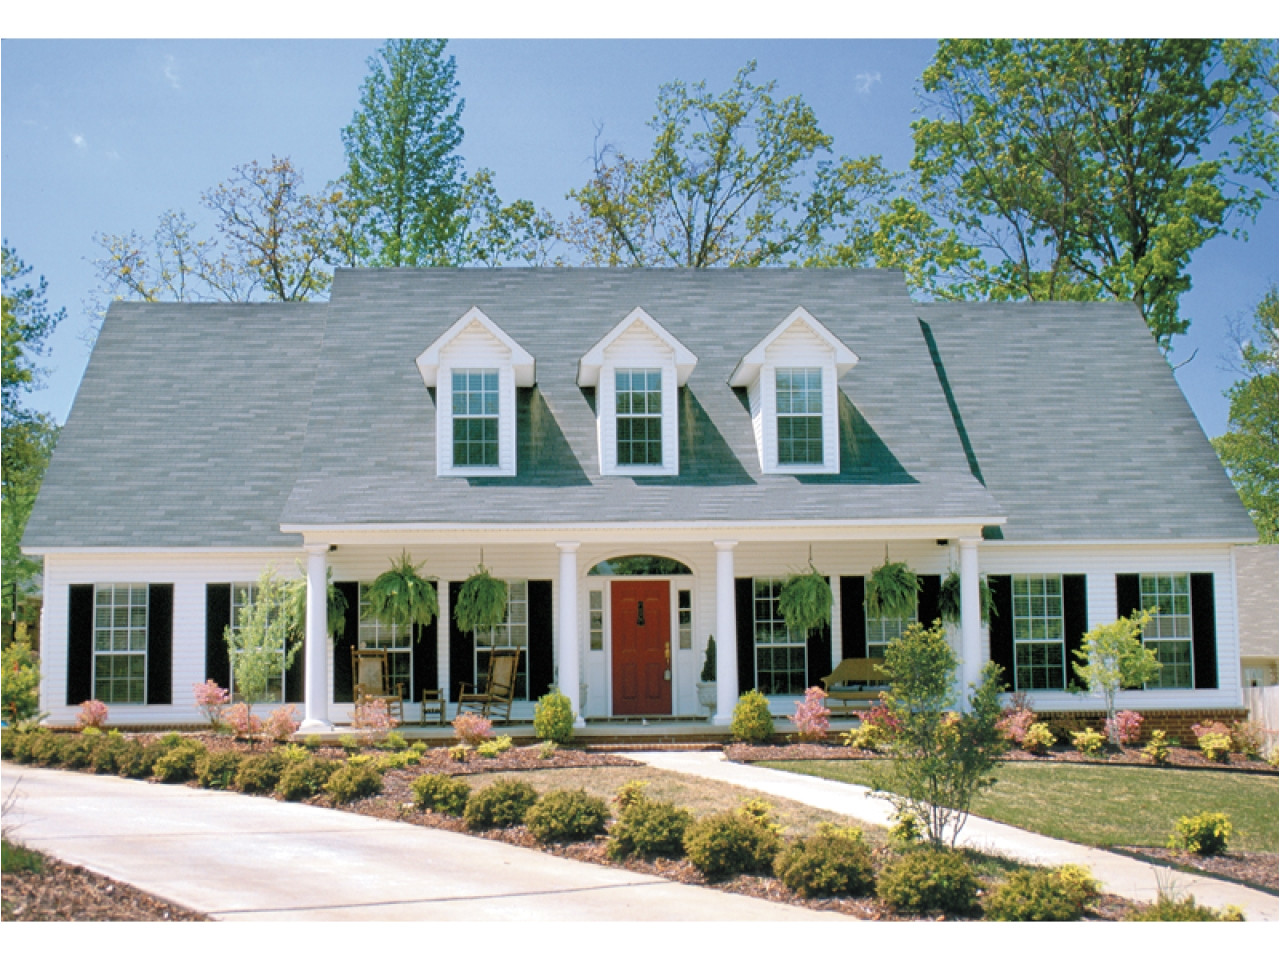 3bea07ac4eb4096d southern house plans with wrap around porch southern house plans with front porches